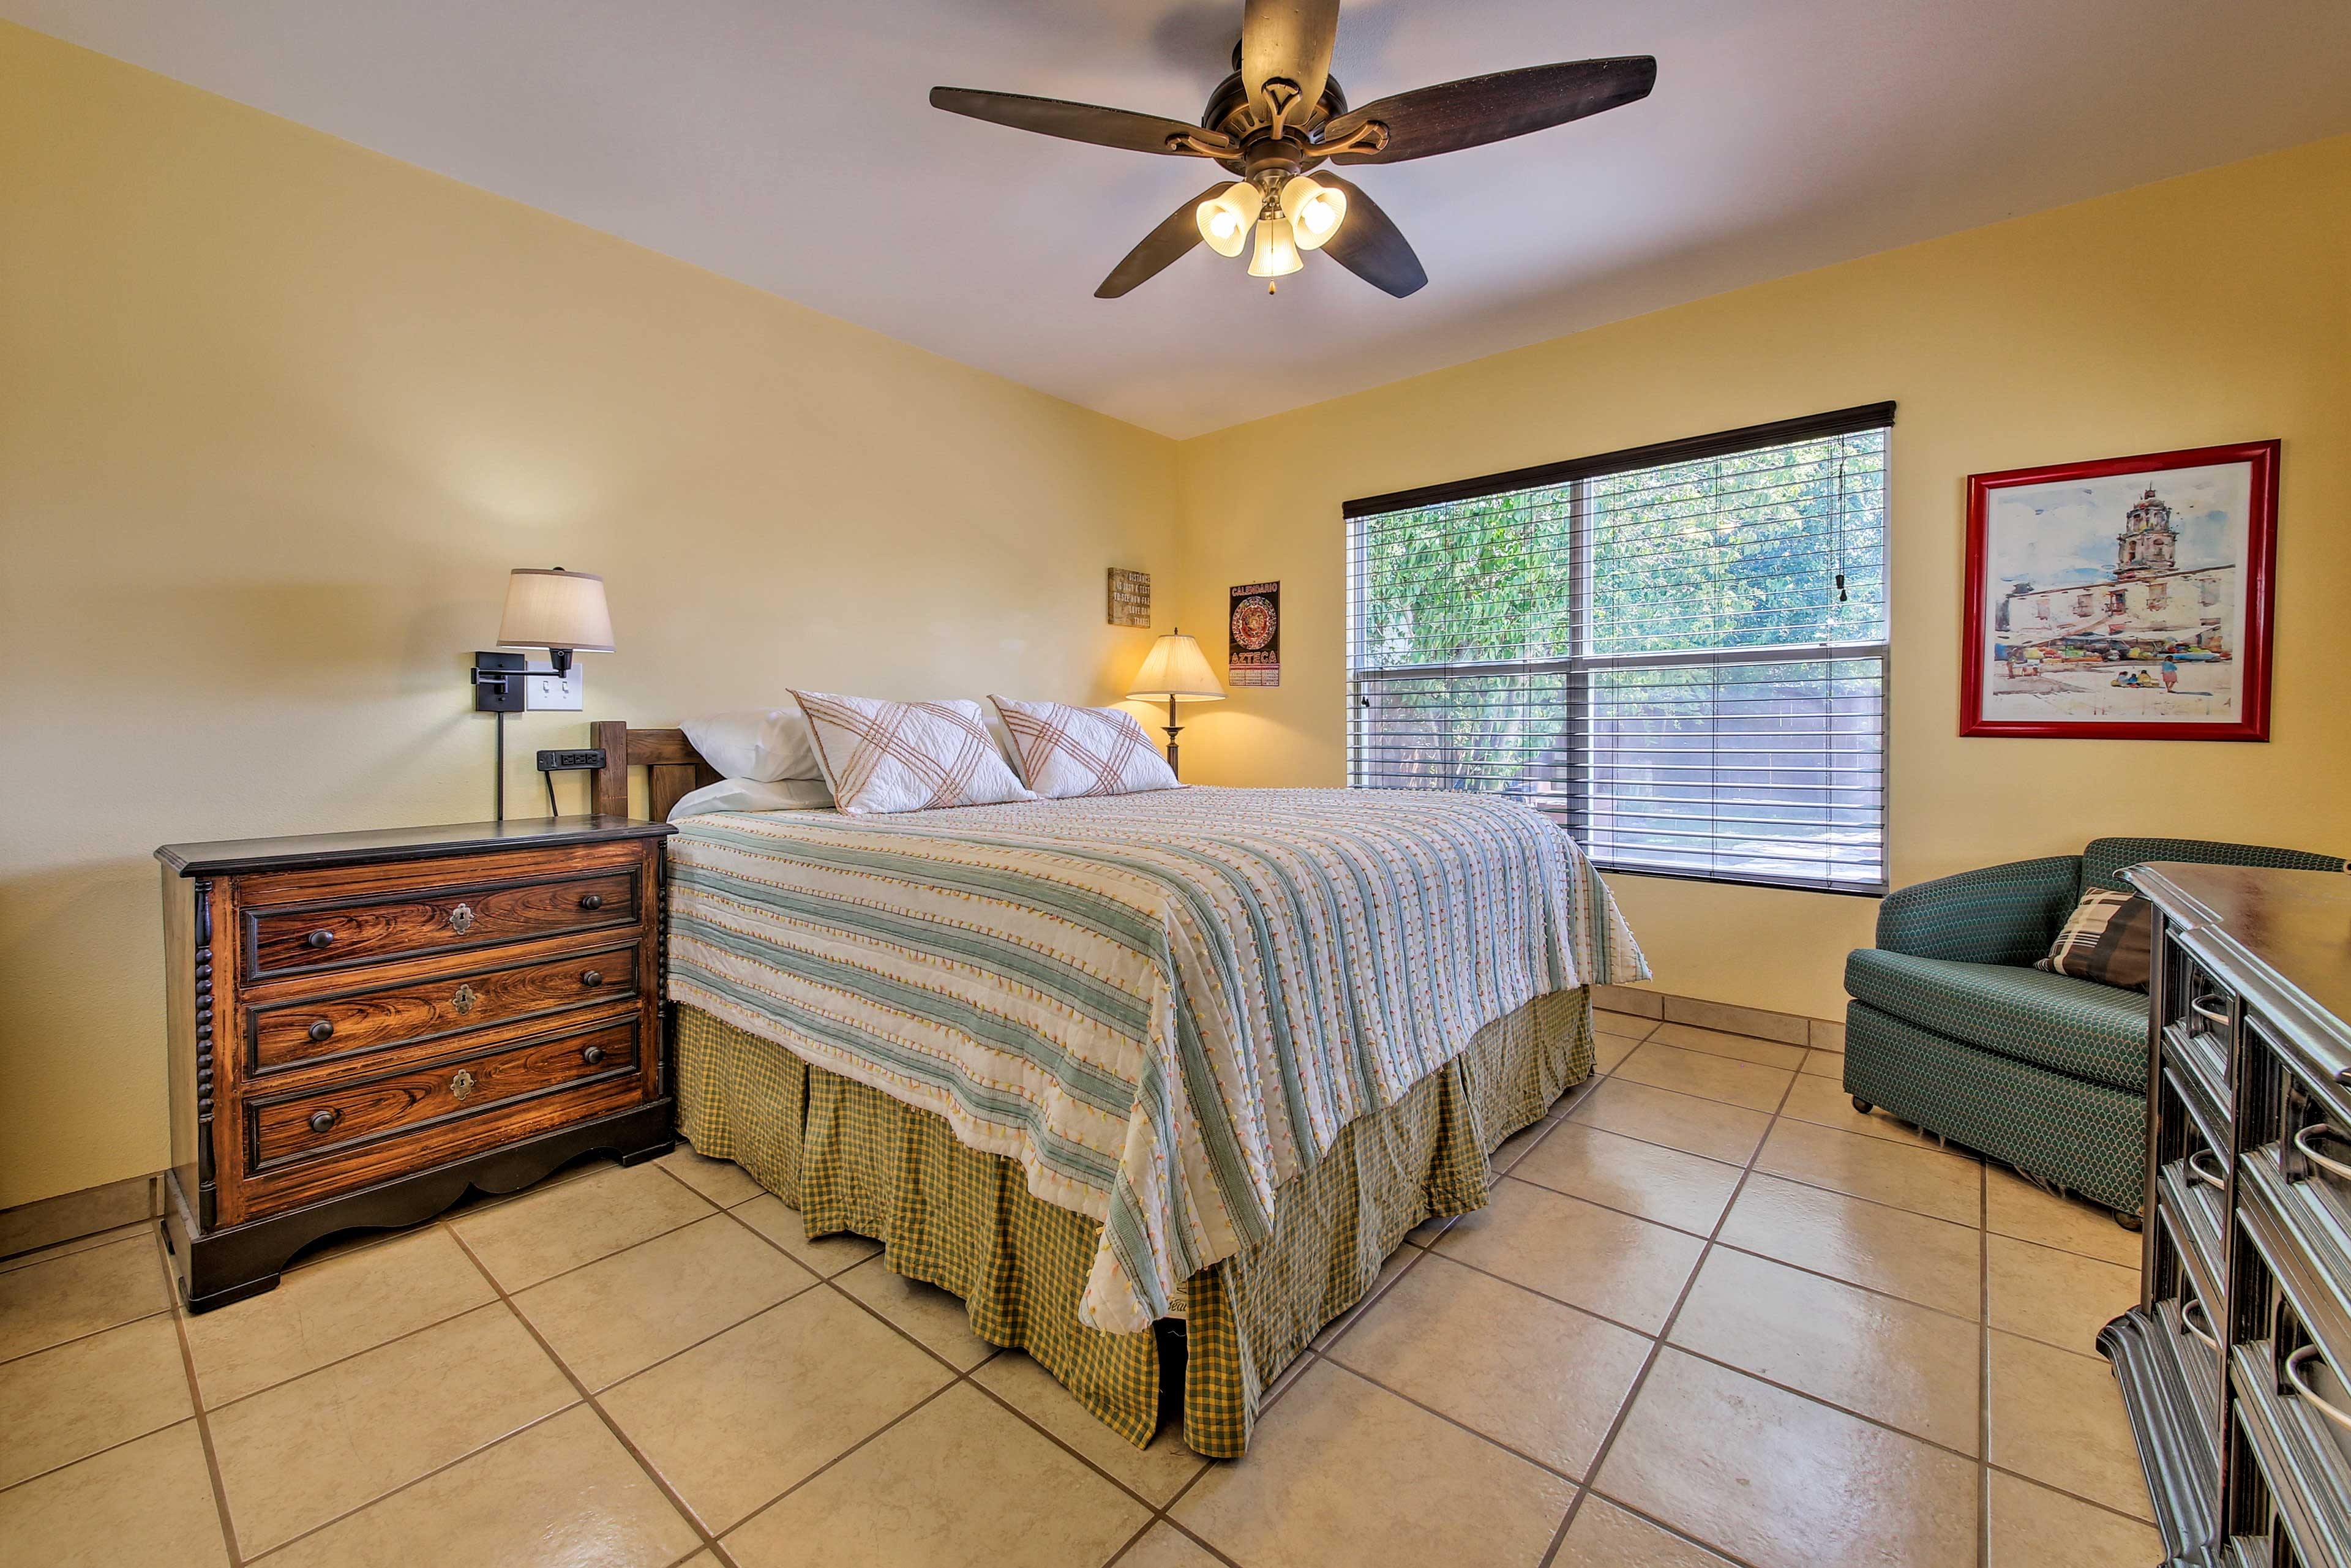 Fall into this king-sized bed in the master bedroom.